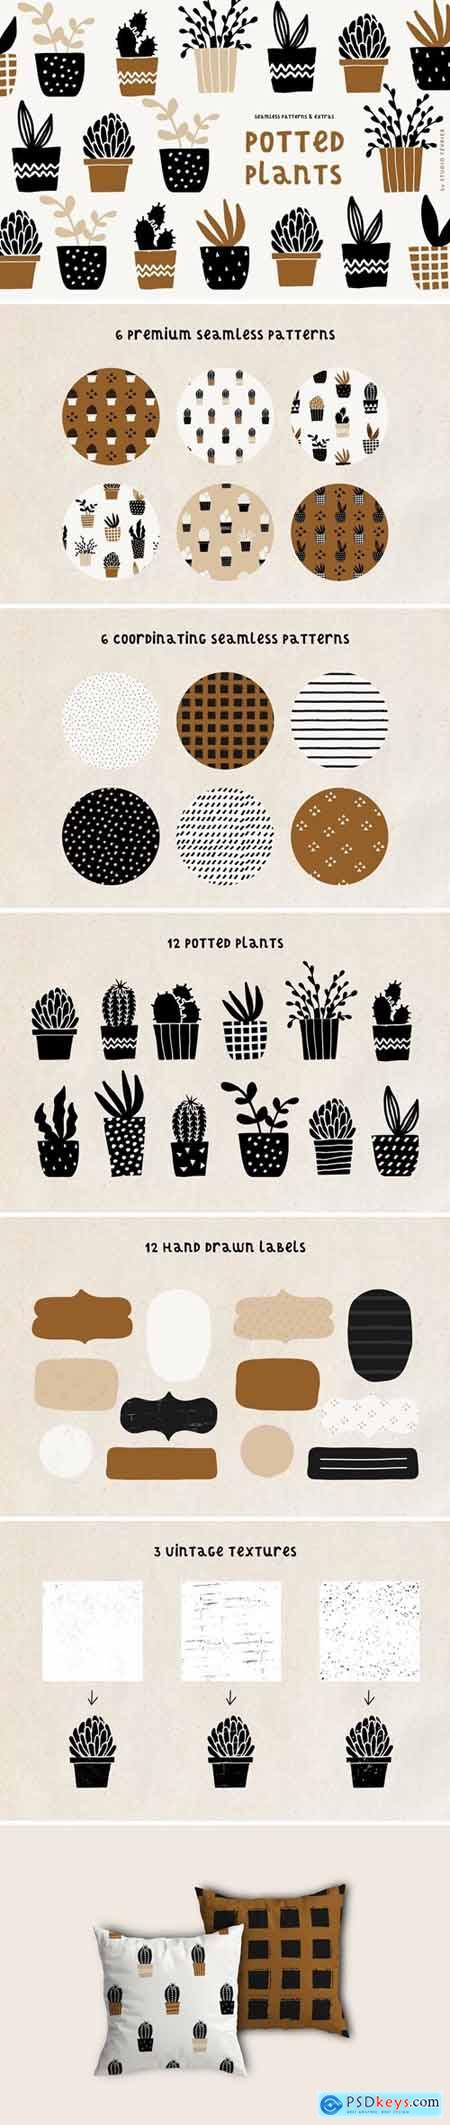 Potted Plants - Patterns & Extras 3567173